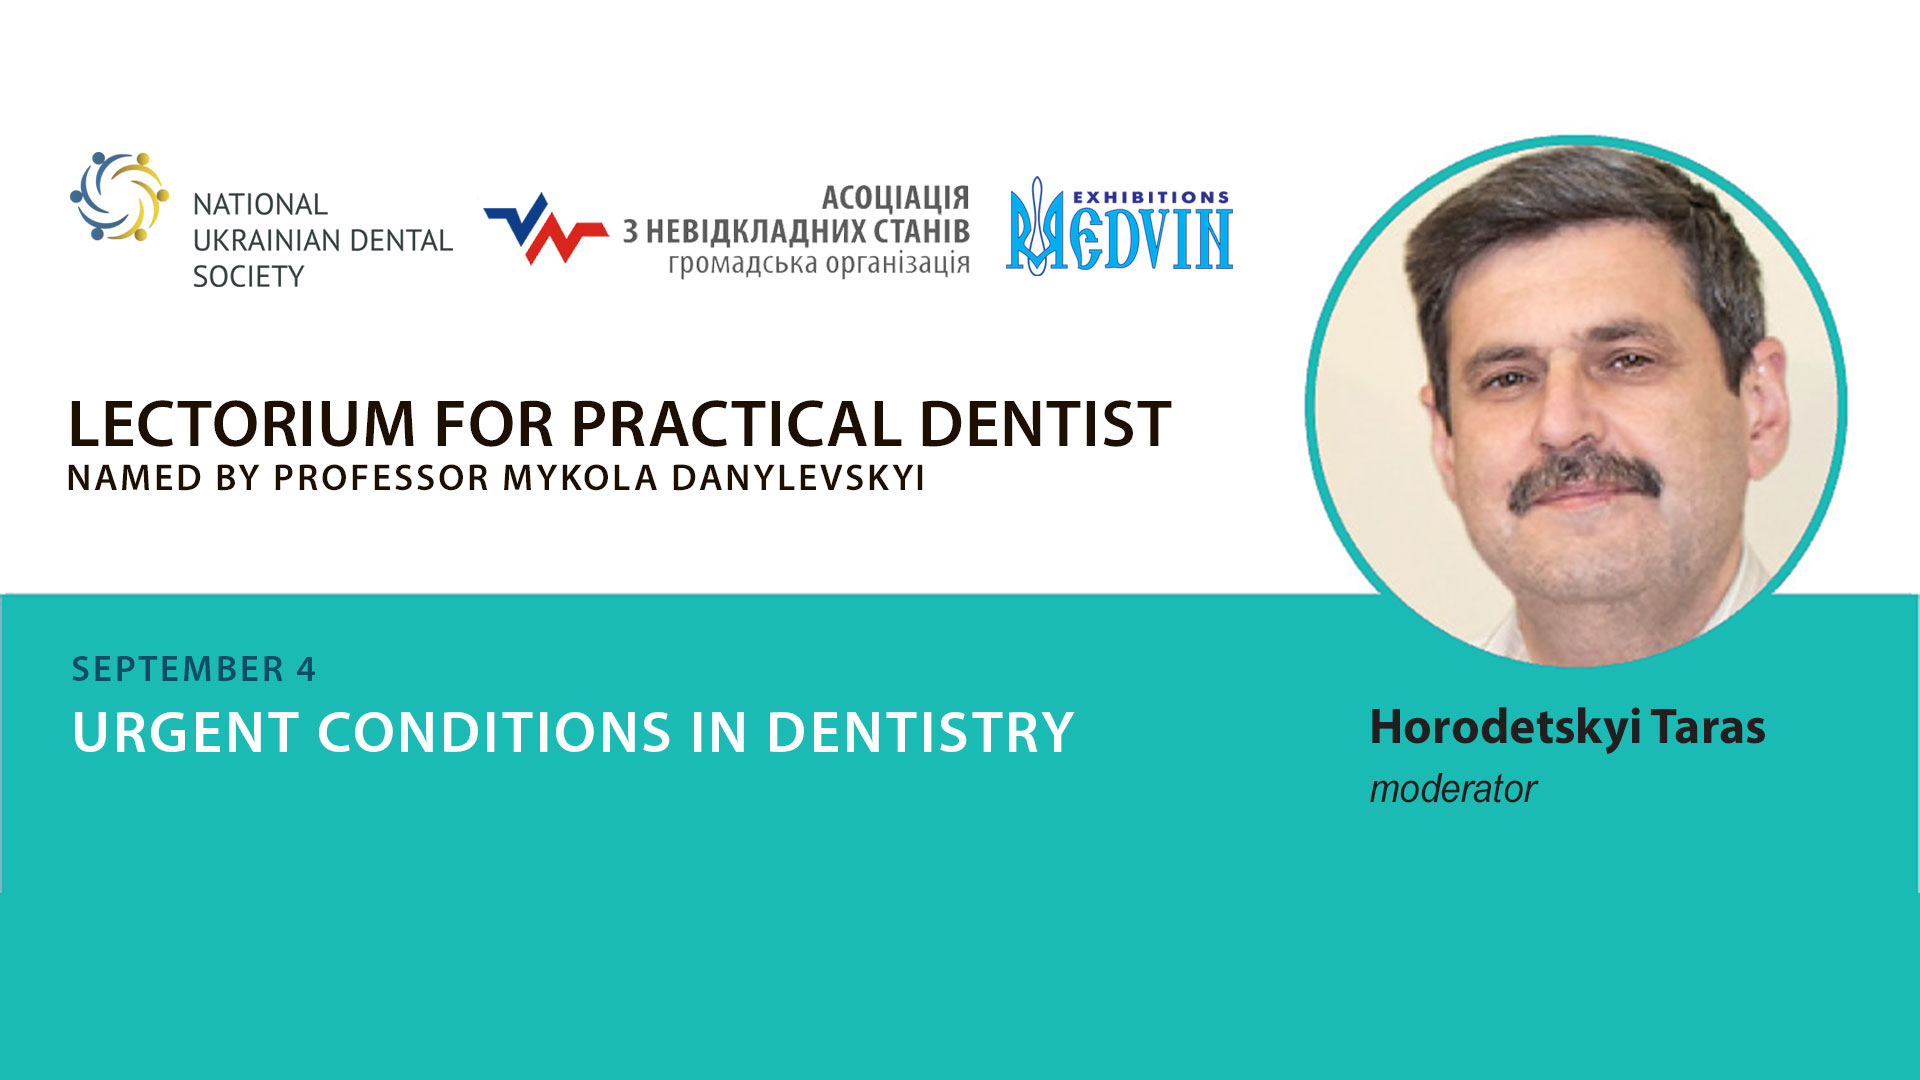 Urgent conditions in dentistry